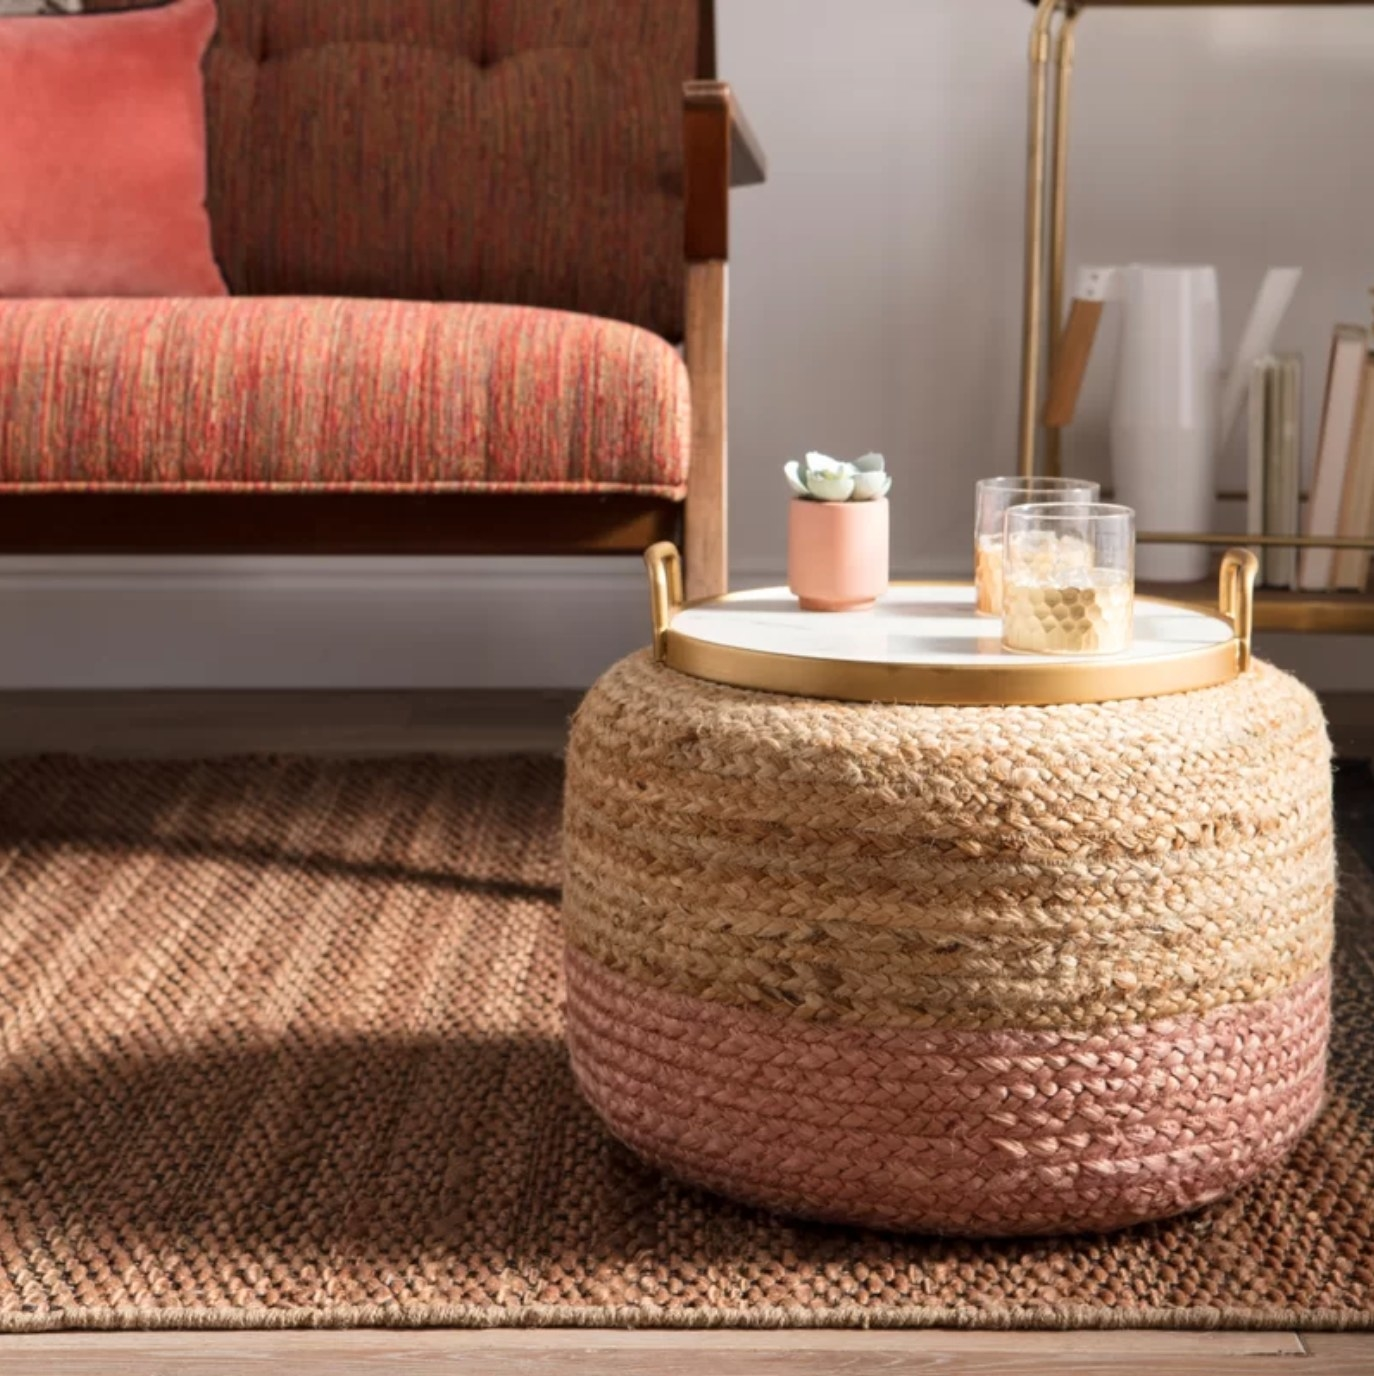 The round pouf ottoman in beige/ light pink holding a tray of drinks